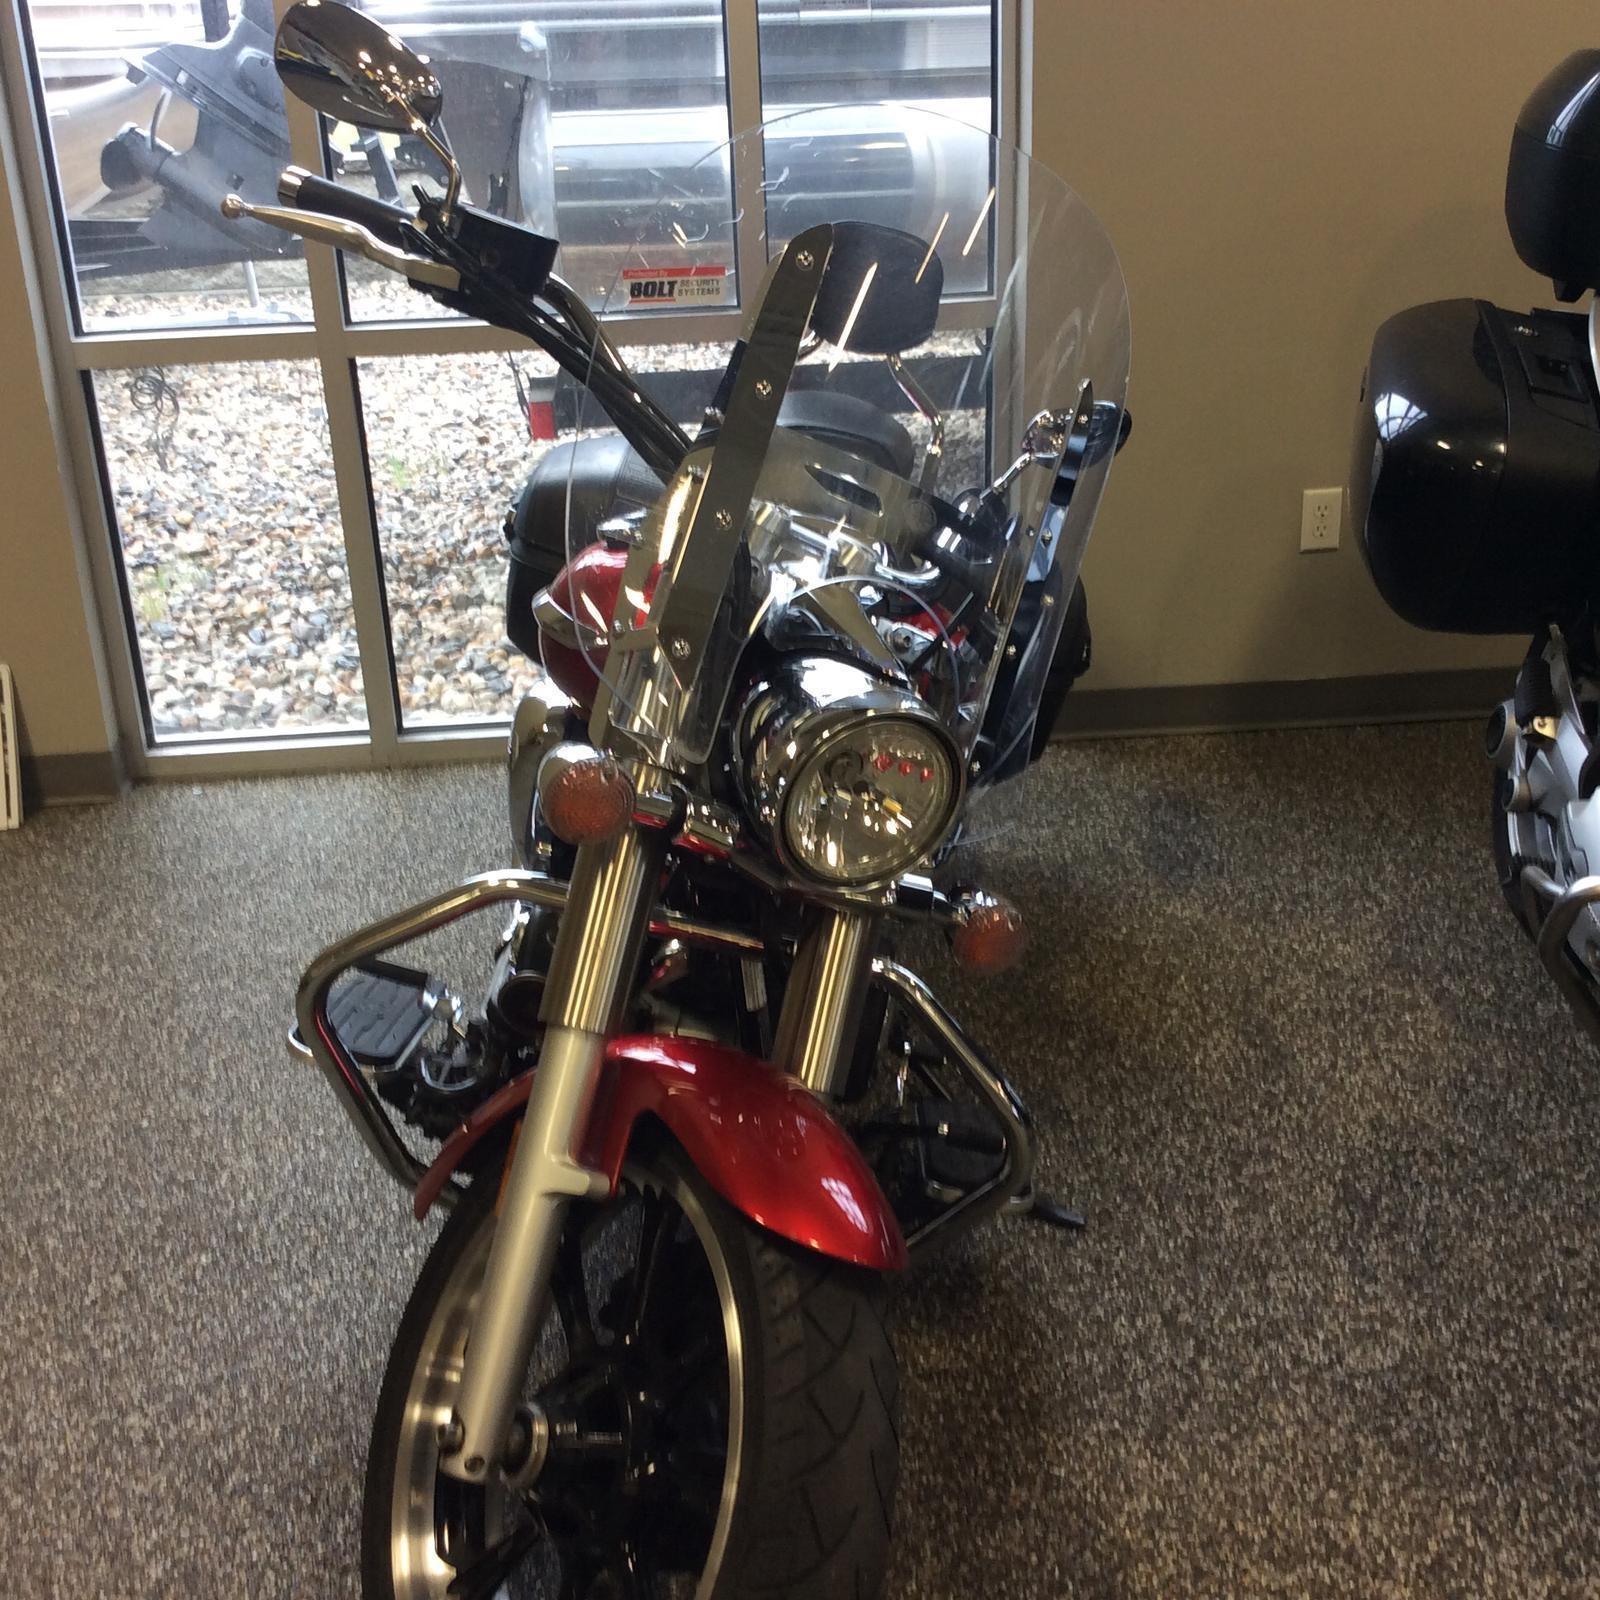 2011 Yamaha V-star 950 Tourer | 3 of 3